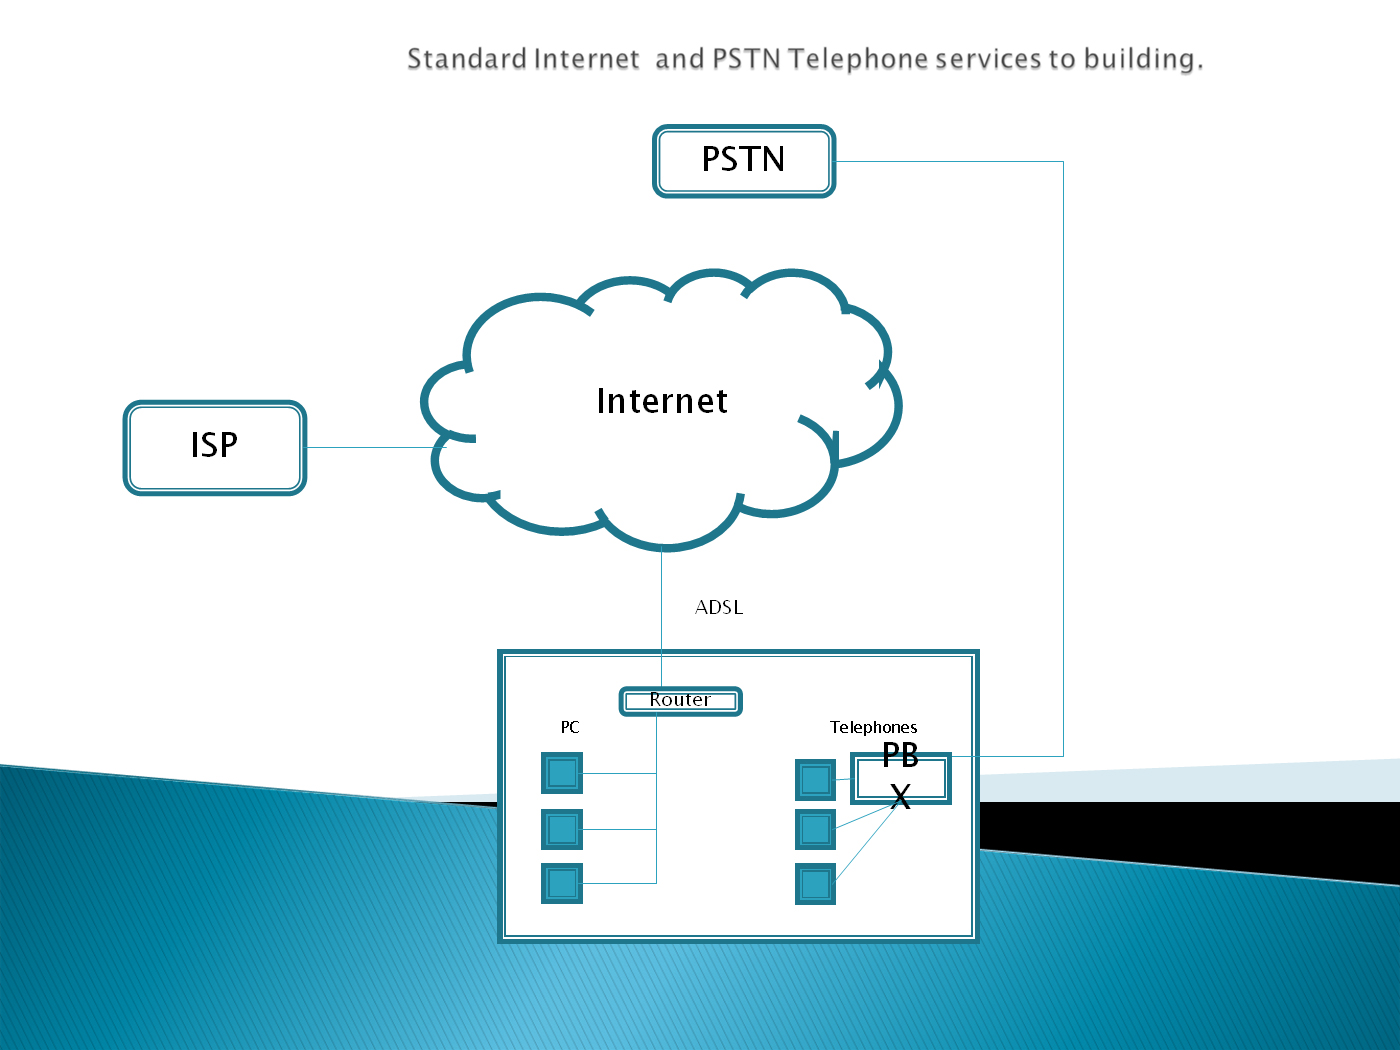 Standard Internet and PSTN Telephone Services to Building